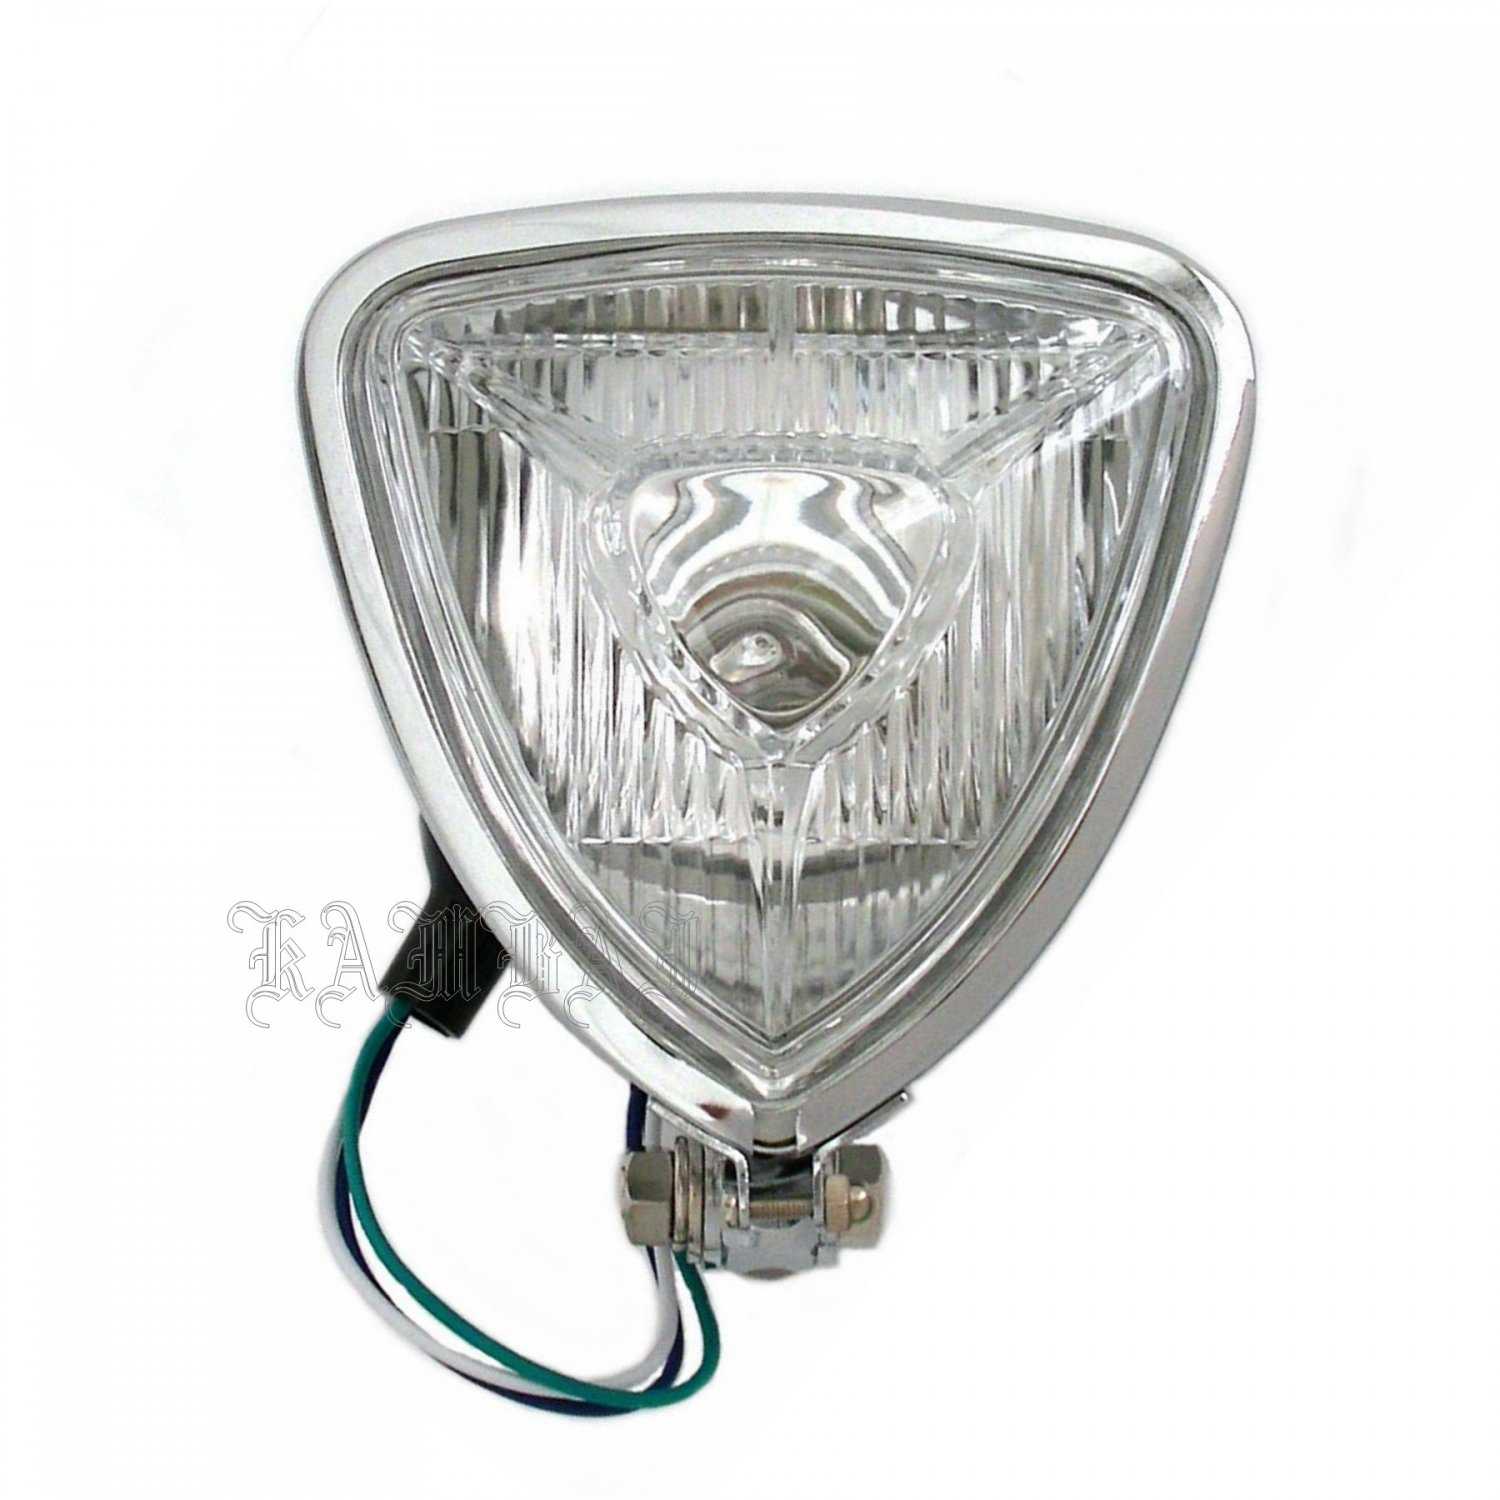 "Motorcycle Headlight Triangle 5 1/2"" Head Lamp Triangle Universal Metal Chromed"